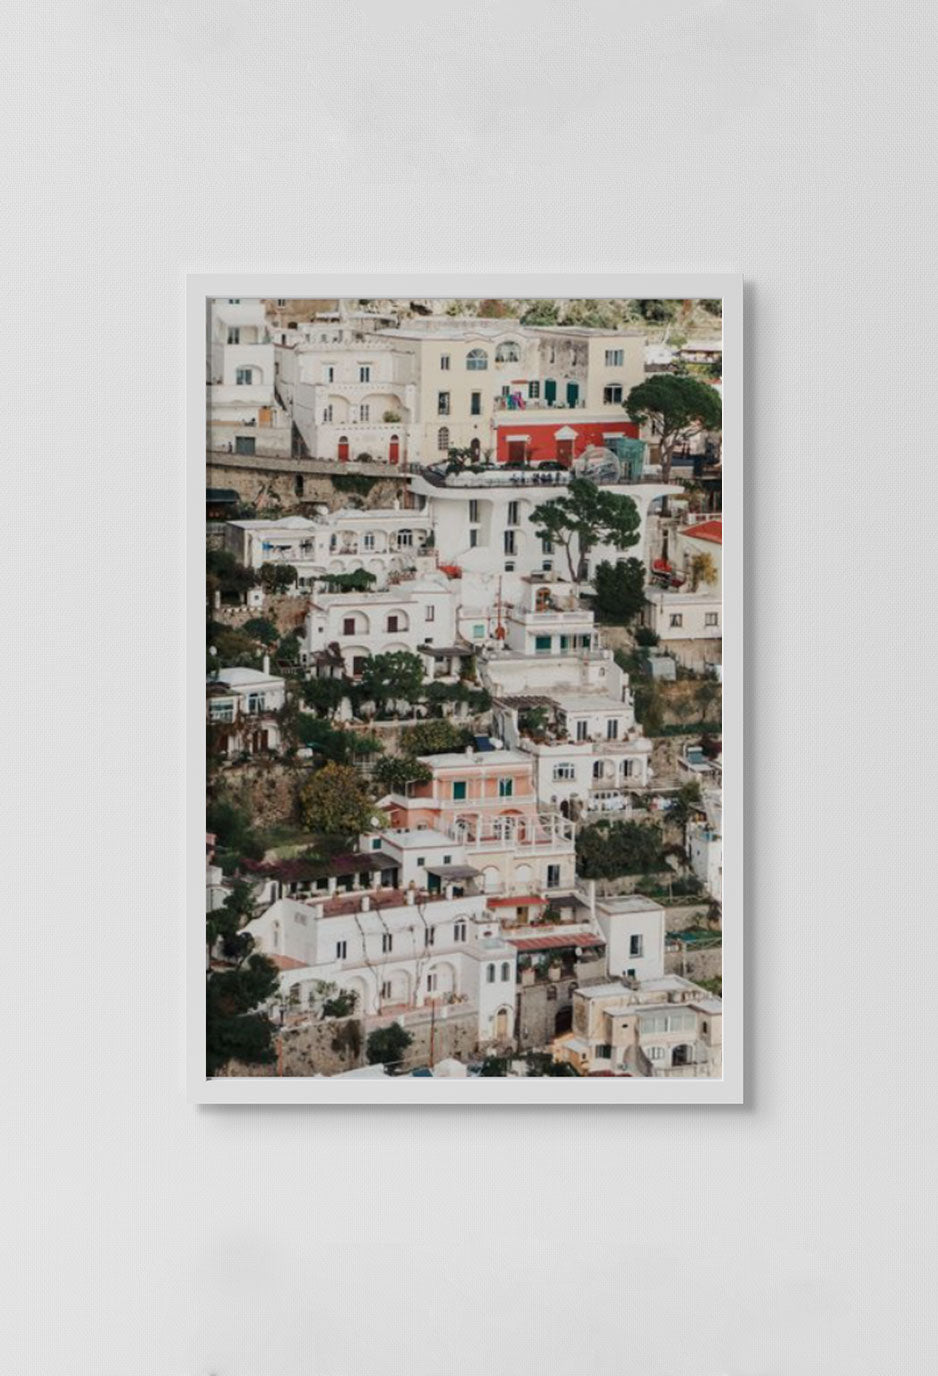 image of photograph of European city with multi-colored homes in white frame on white wall.